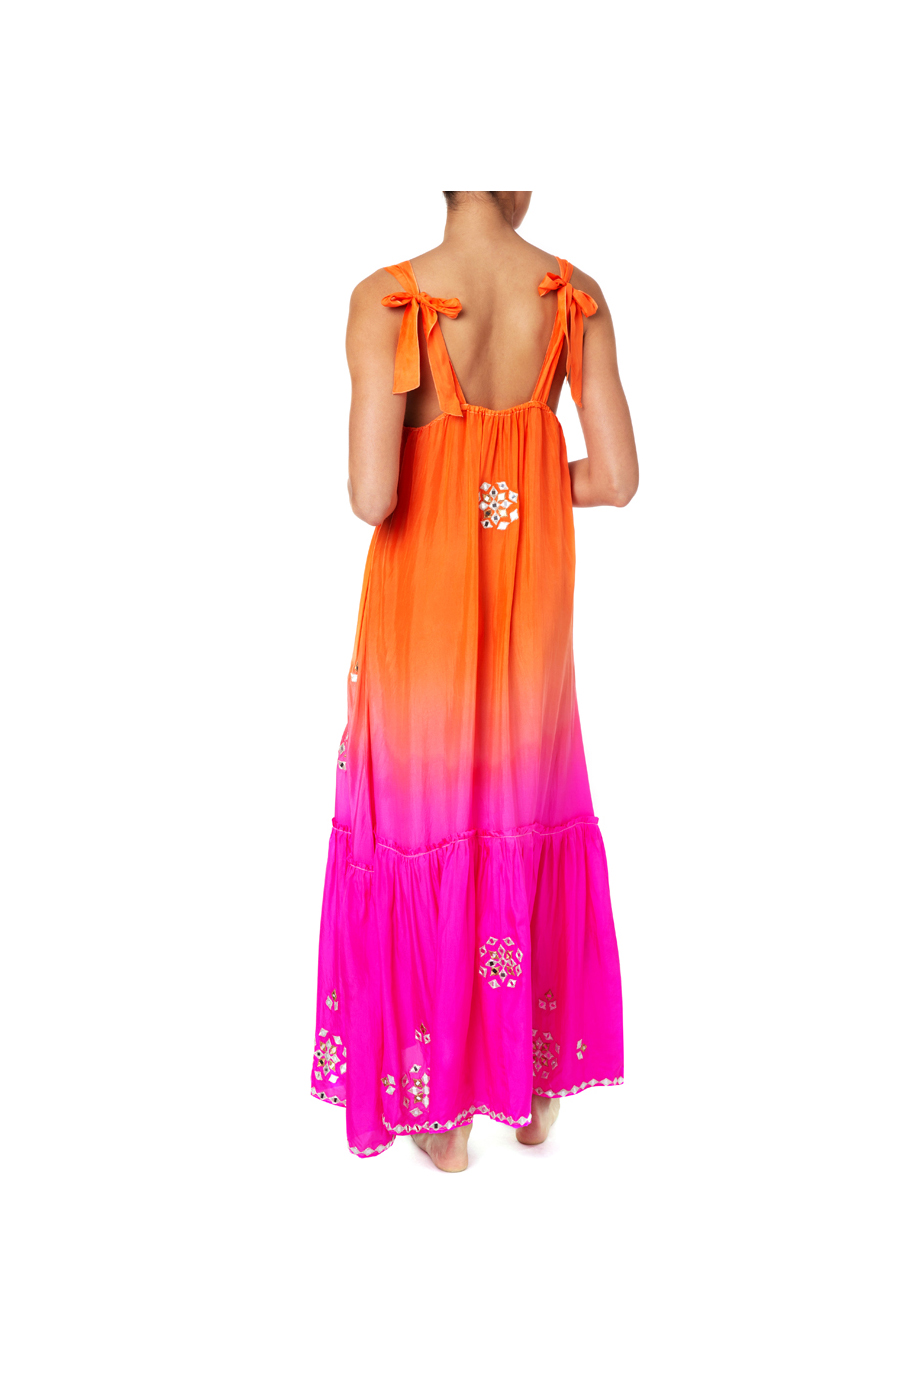 OMBRE V-NECK DRESS PINK ORANGE